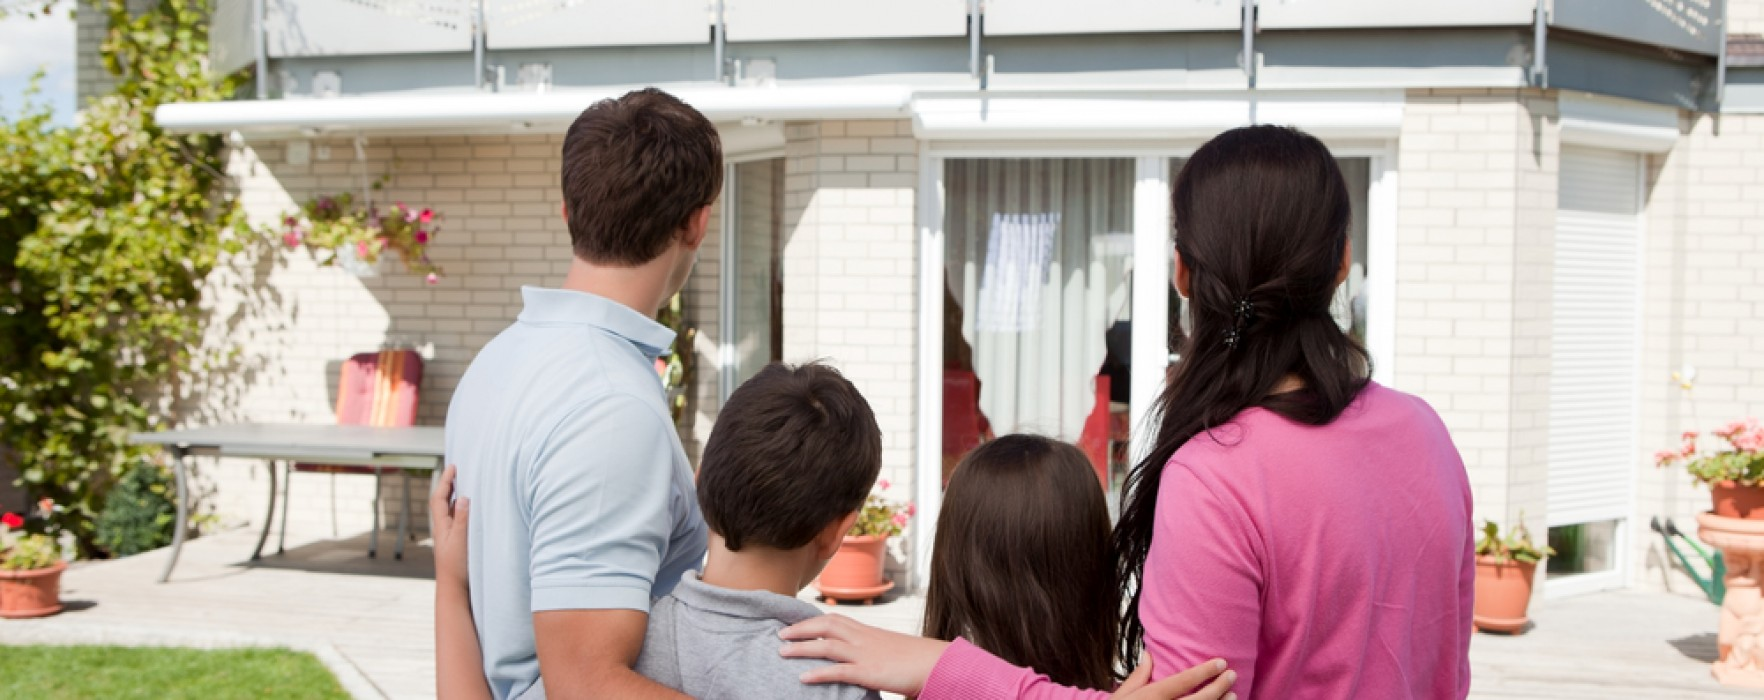 What to Know Before Making an Offer on a Home